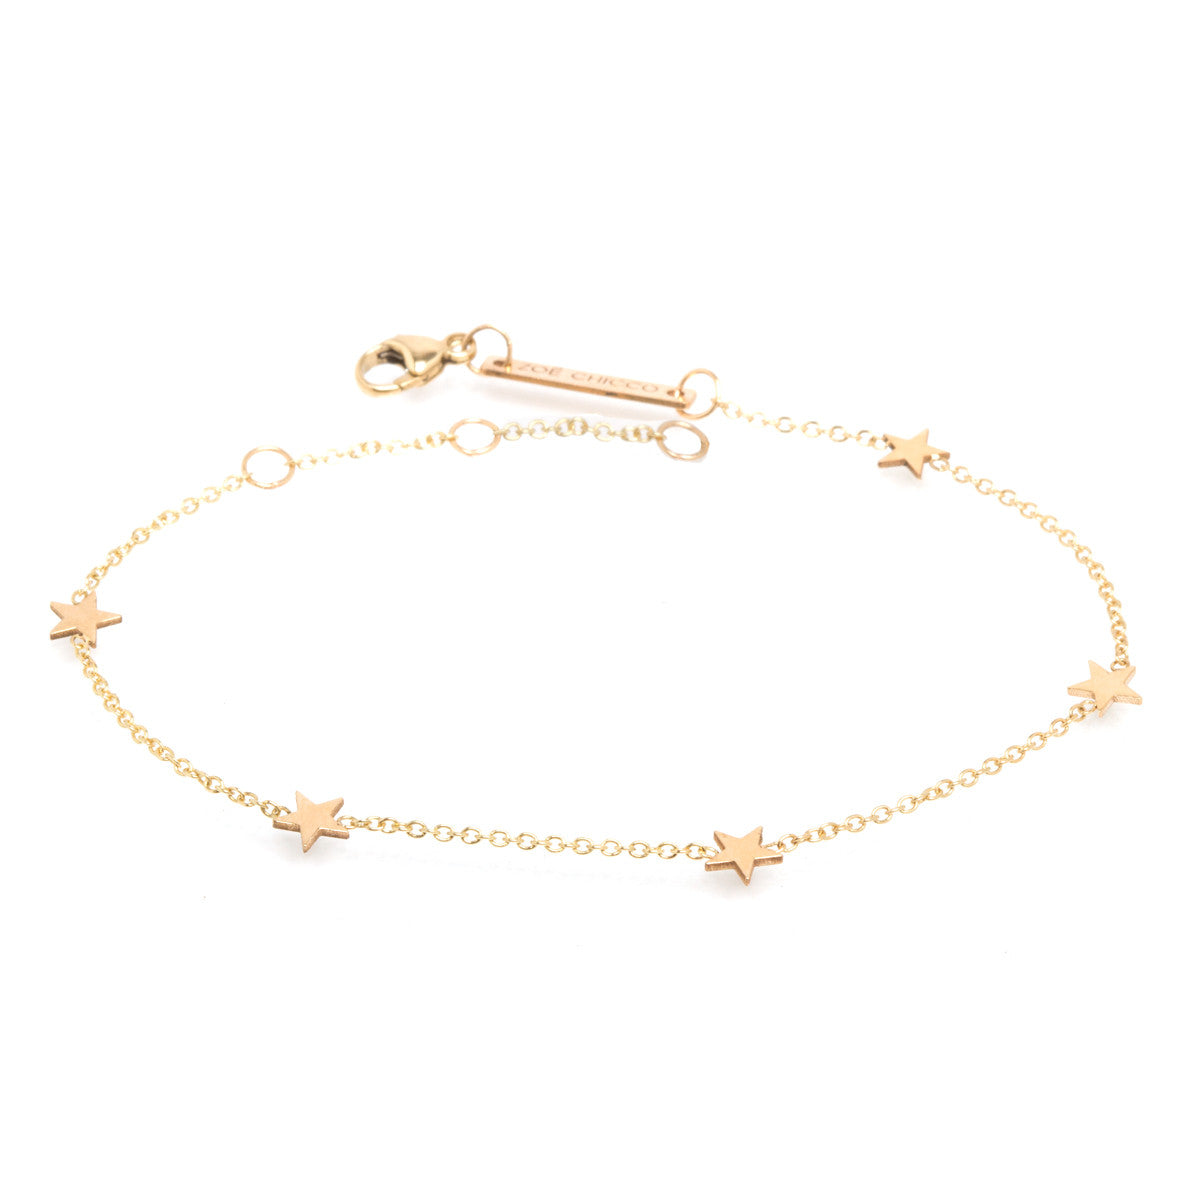 Zoë Chicco 14kt Yellow Gold Itty Bitty Stars Bracelet